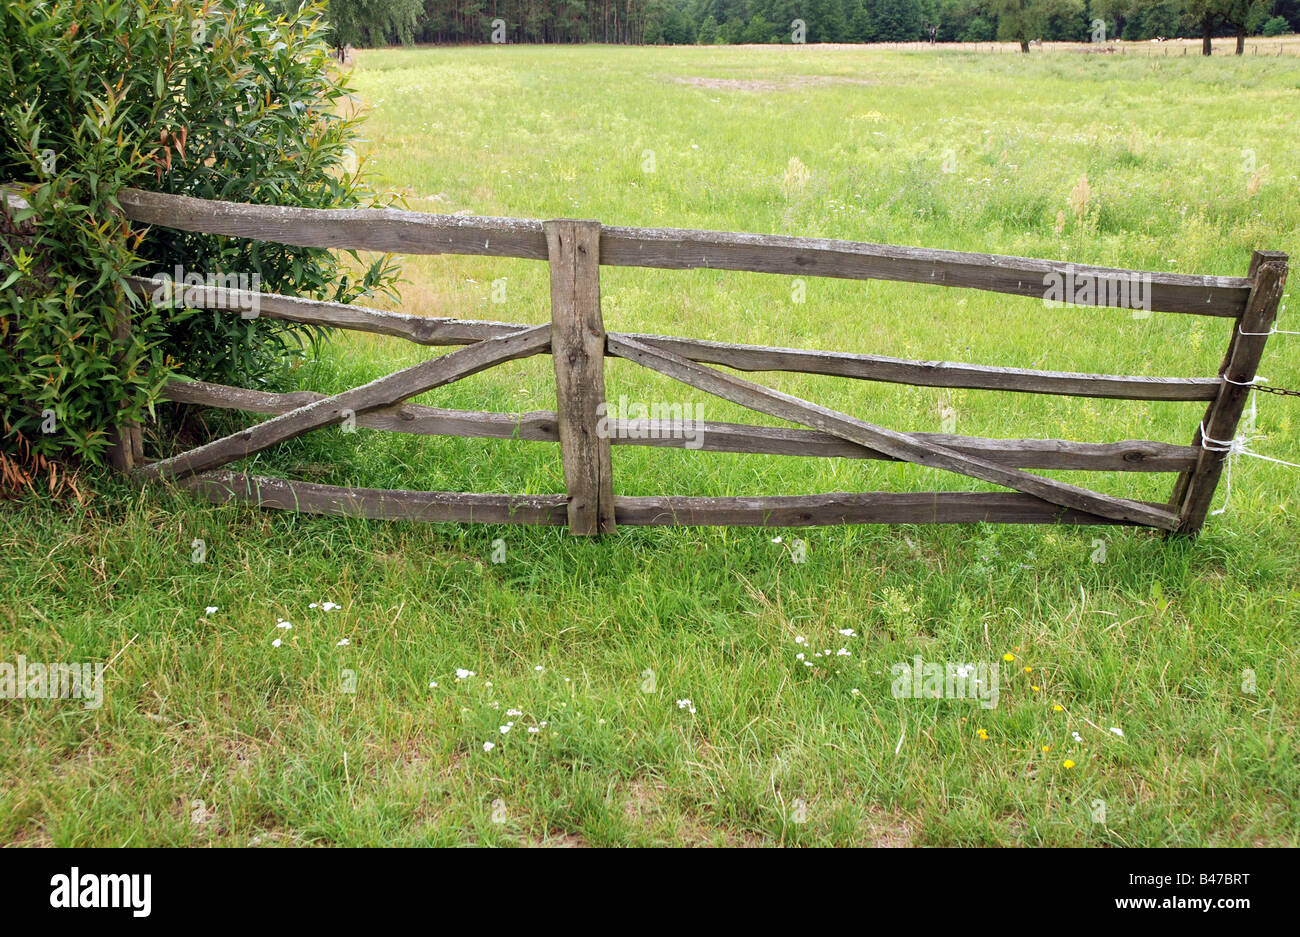 Old Barbed Wire Fence Pasture Stock Photos & Old Barbed Wire Fence ...